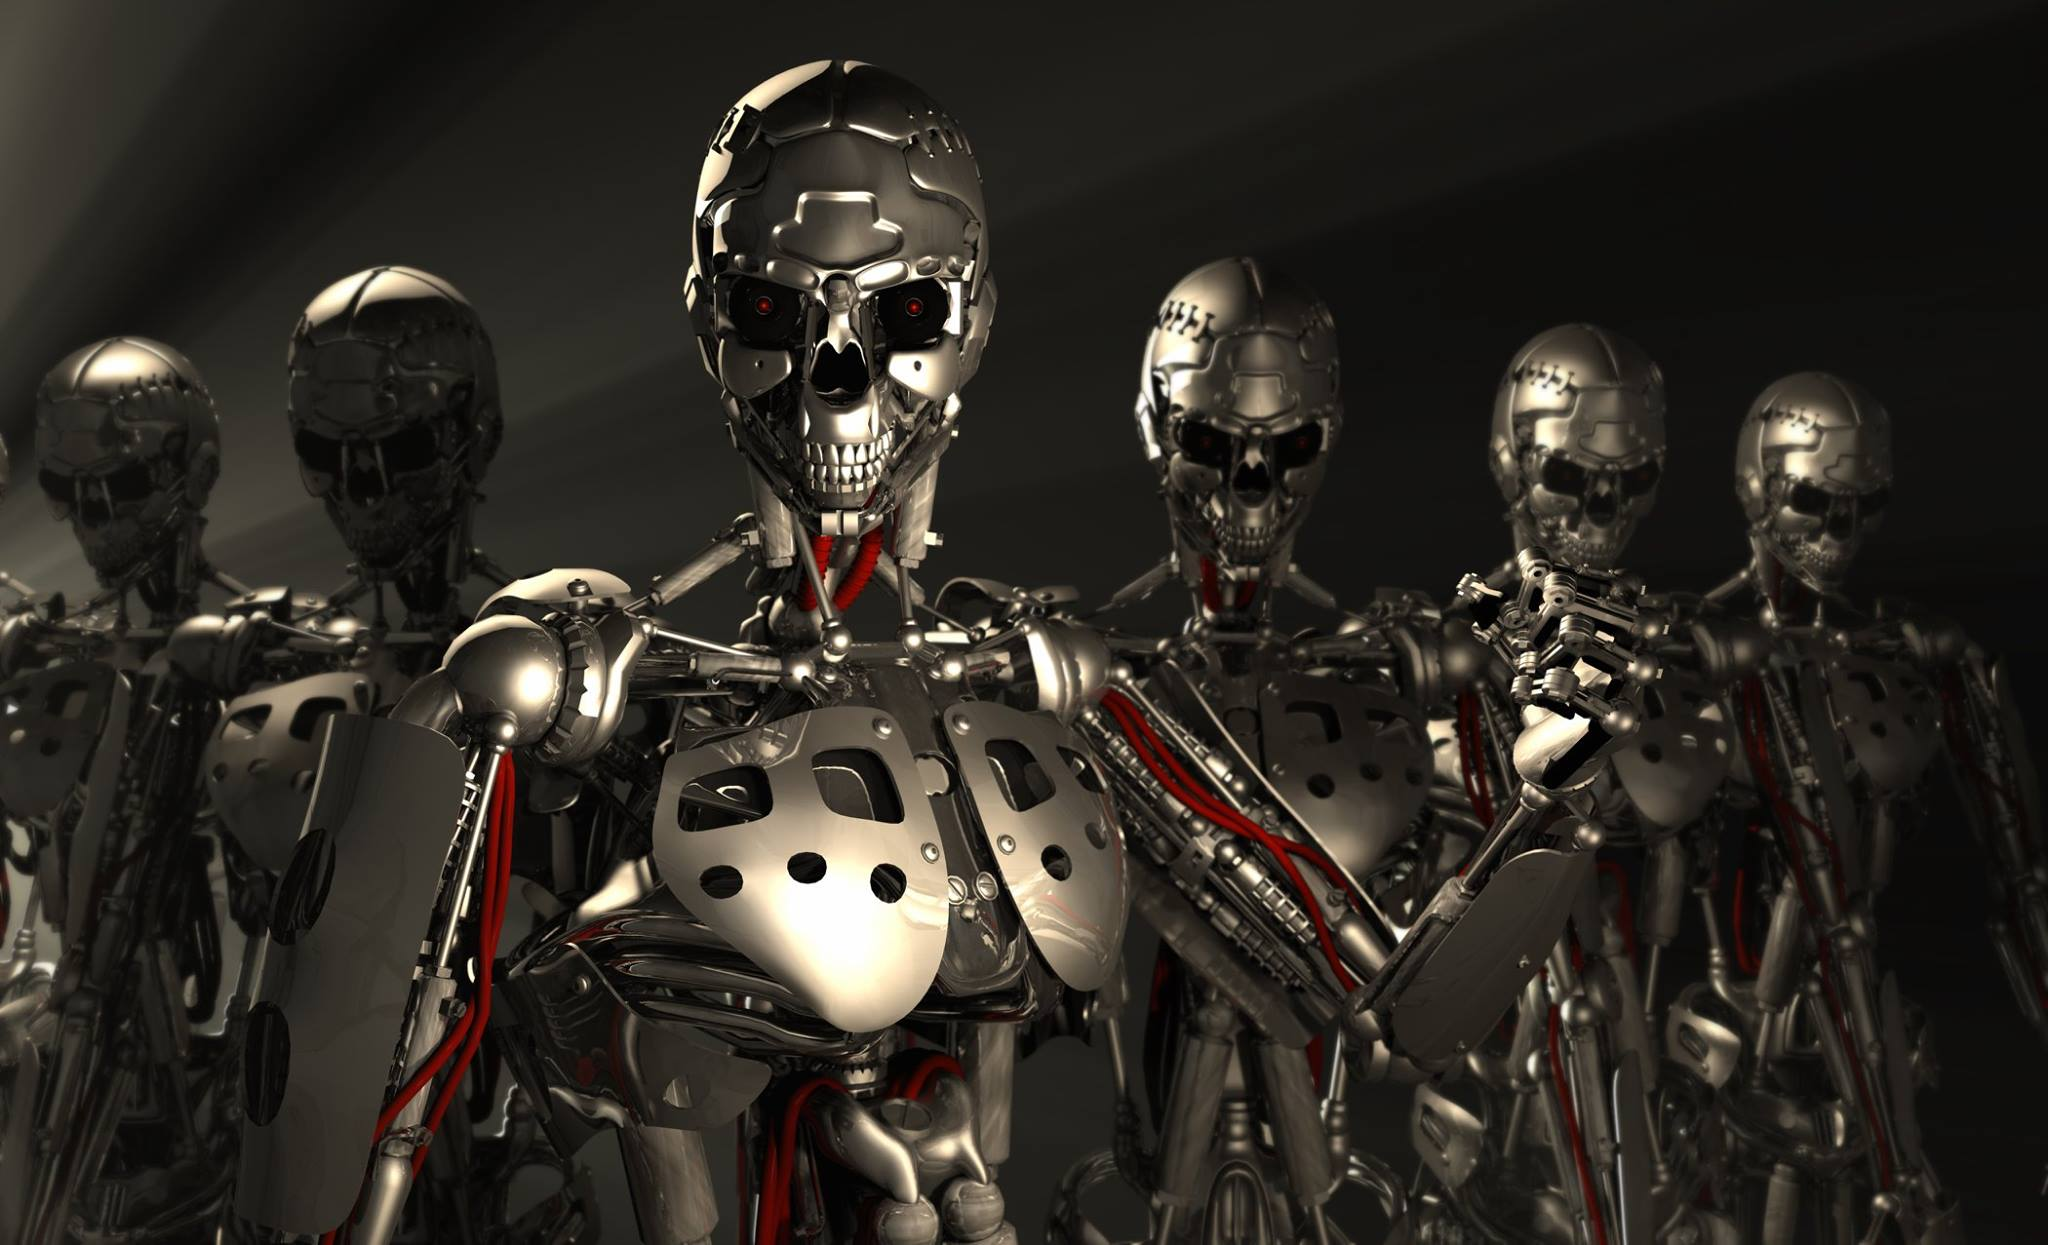 ... DARPA (Defense Advanced Research Projects Agency), and the U.S. Air Force developing (mostly) autonomous, artificially-intelligent (AI) ground robot, ...